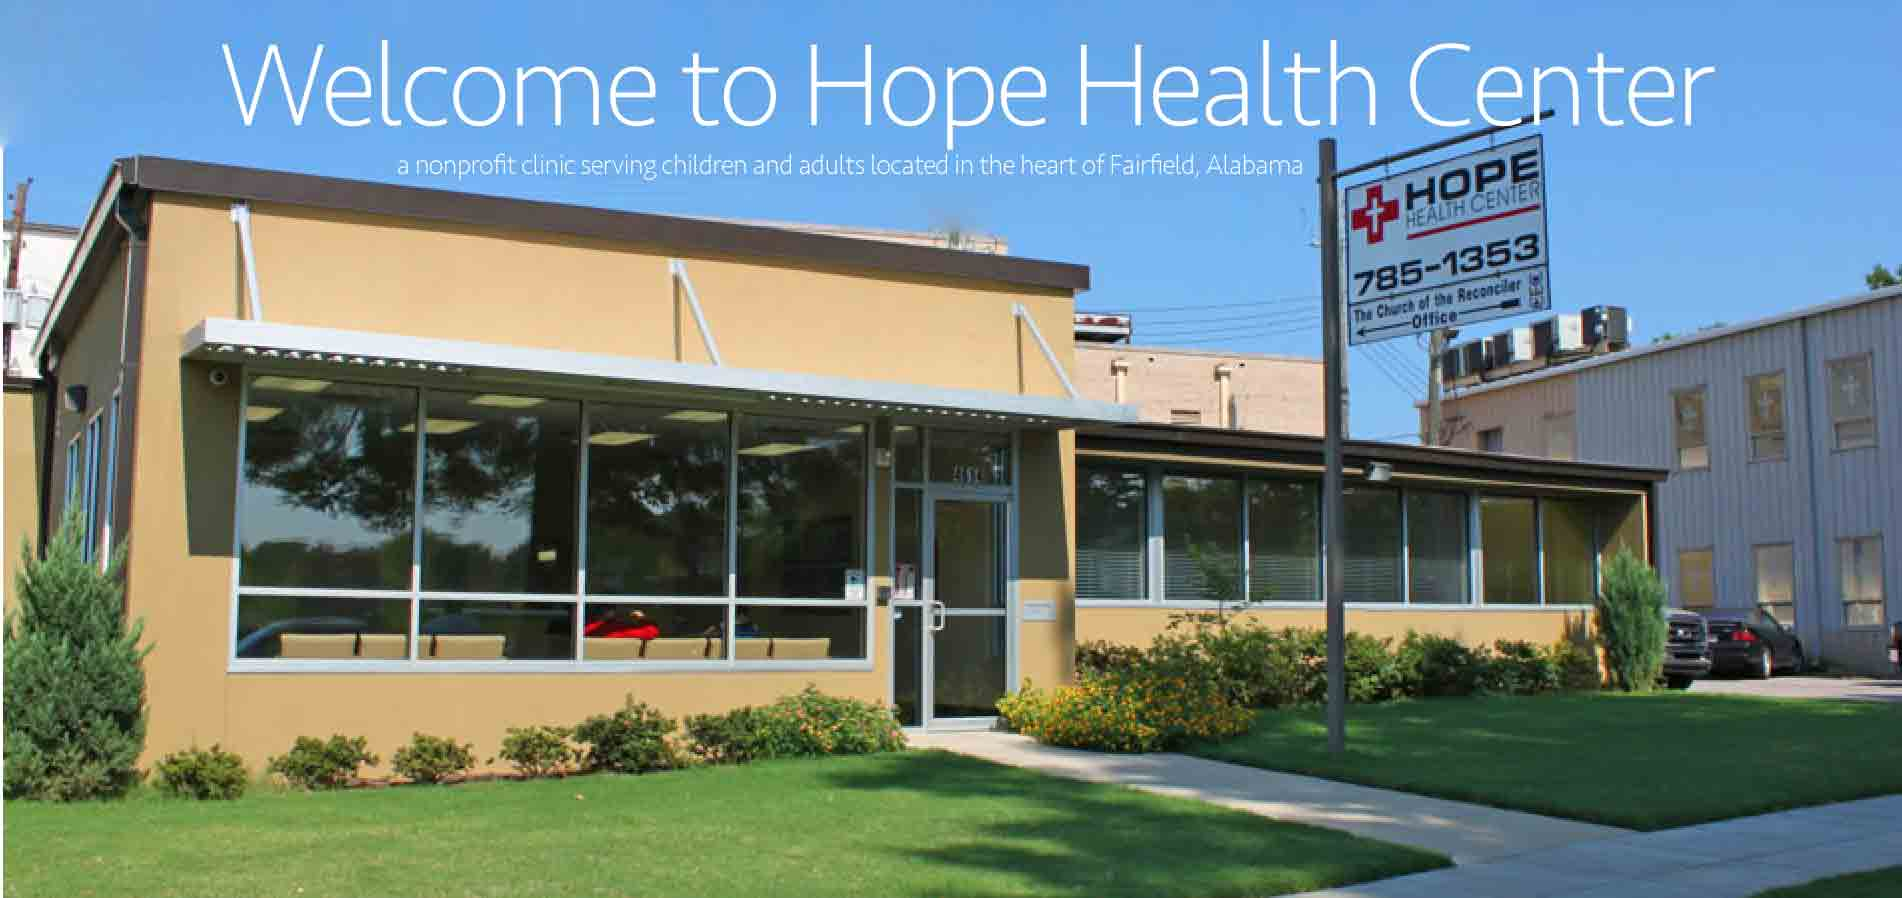 Welcome to the Hope Health Center